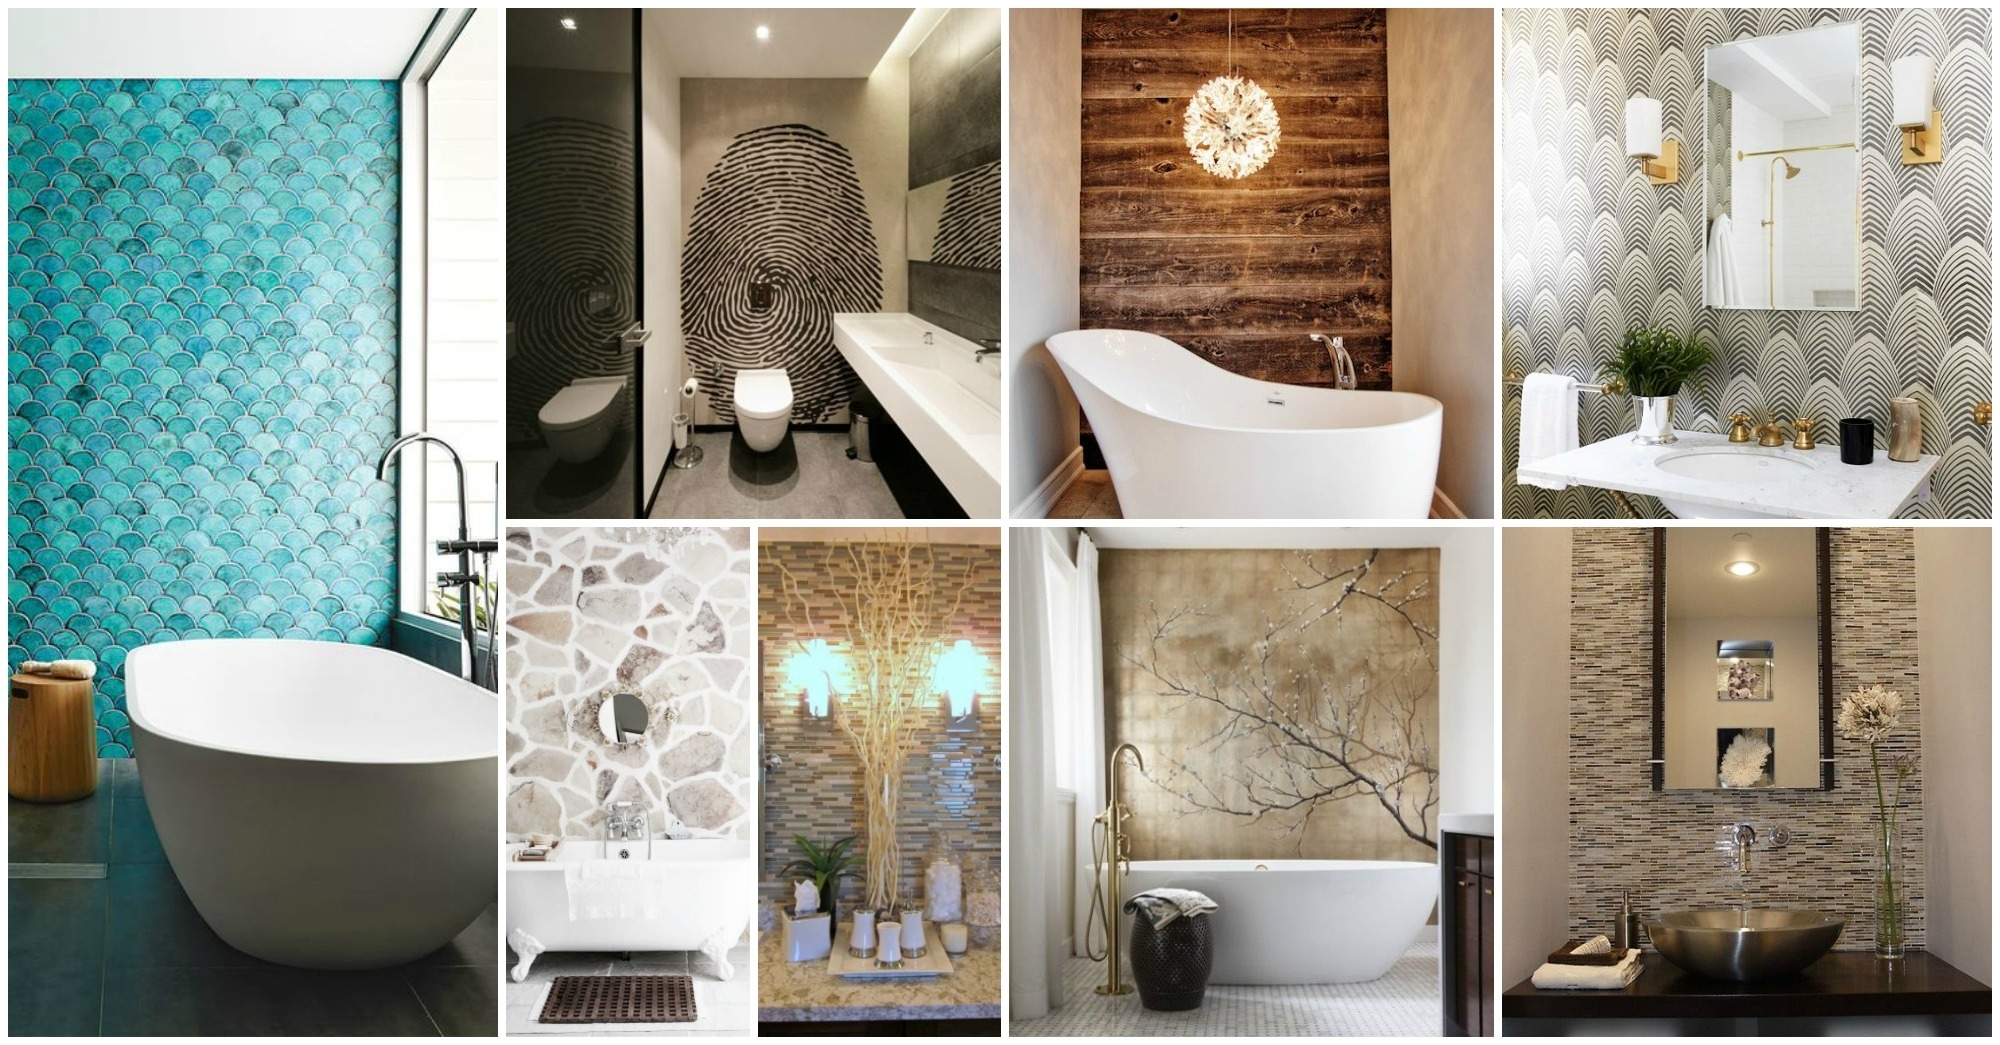 Wonderful 23 Bathroom With Accent Wall On Decorative Accents For Regarding Newest Wall Accents For Bathrooms (View 15 of 15)